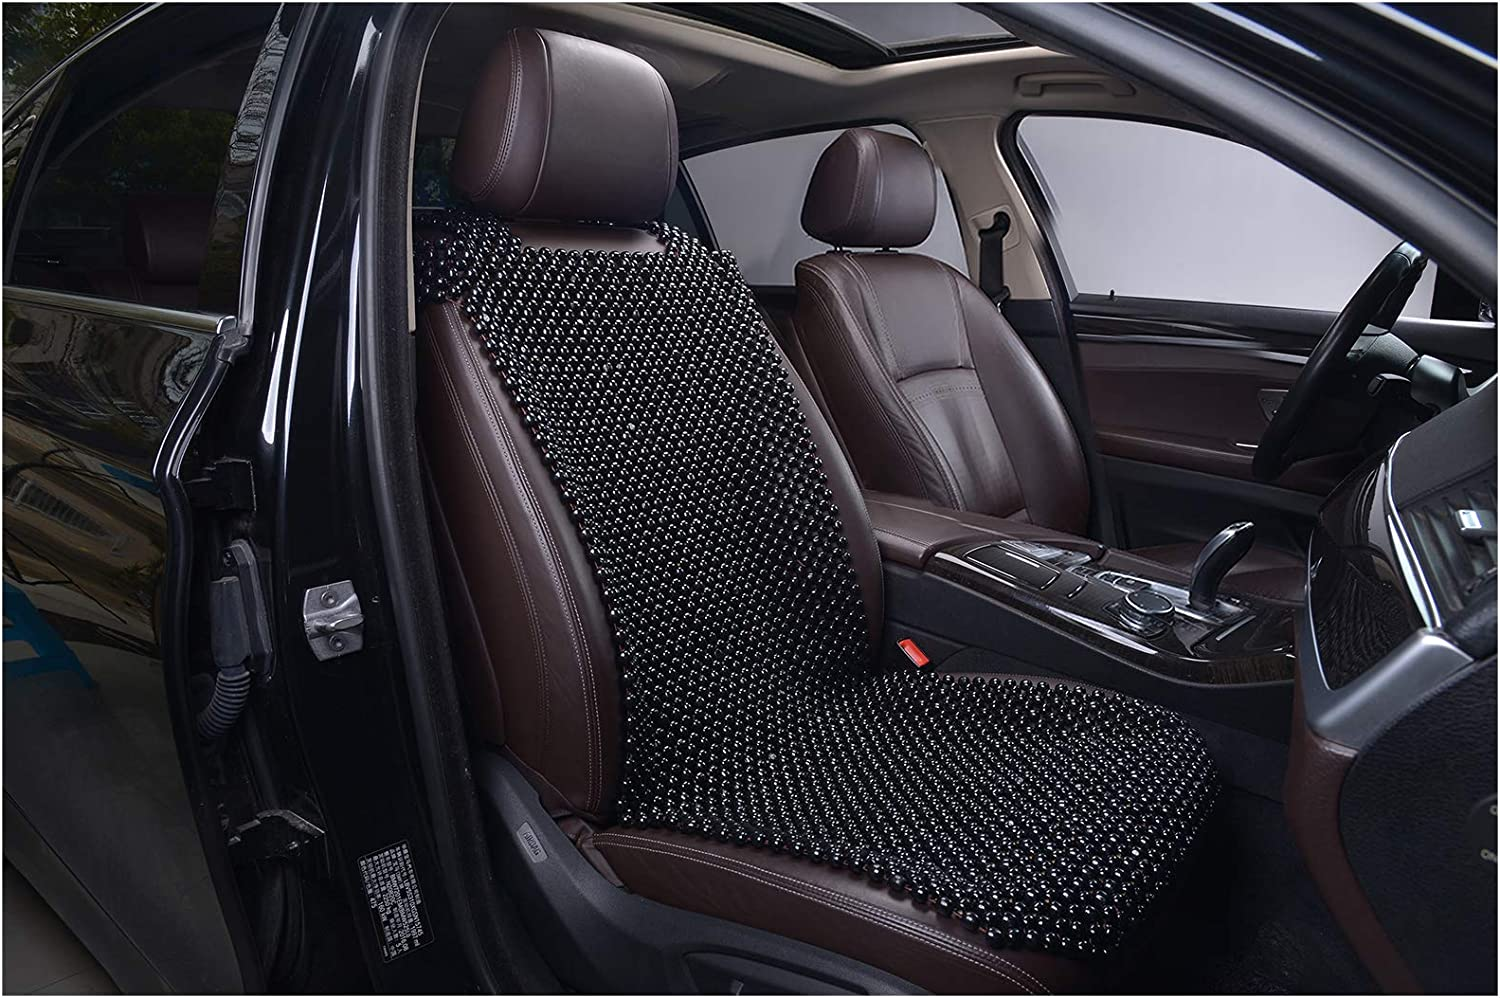 KENNISI Beaded Seat Cover Car Cooling Auto Seats Durable Large Wooden Bead Chair Truck Cushion for Summer Stress Free All Day 1-PC (1-Black-PJ)